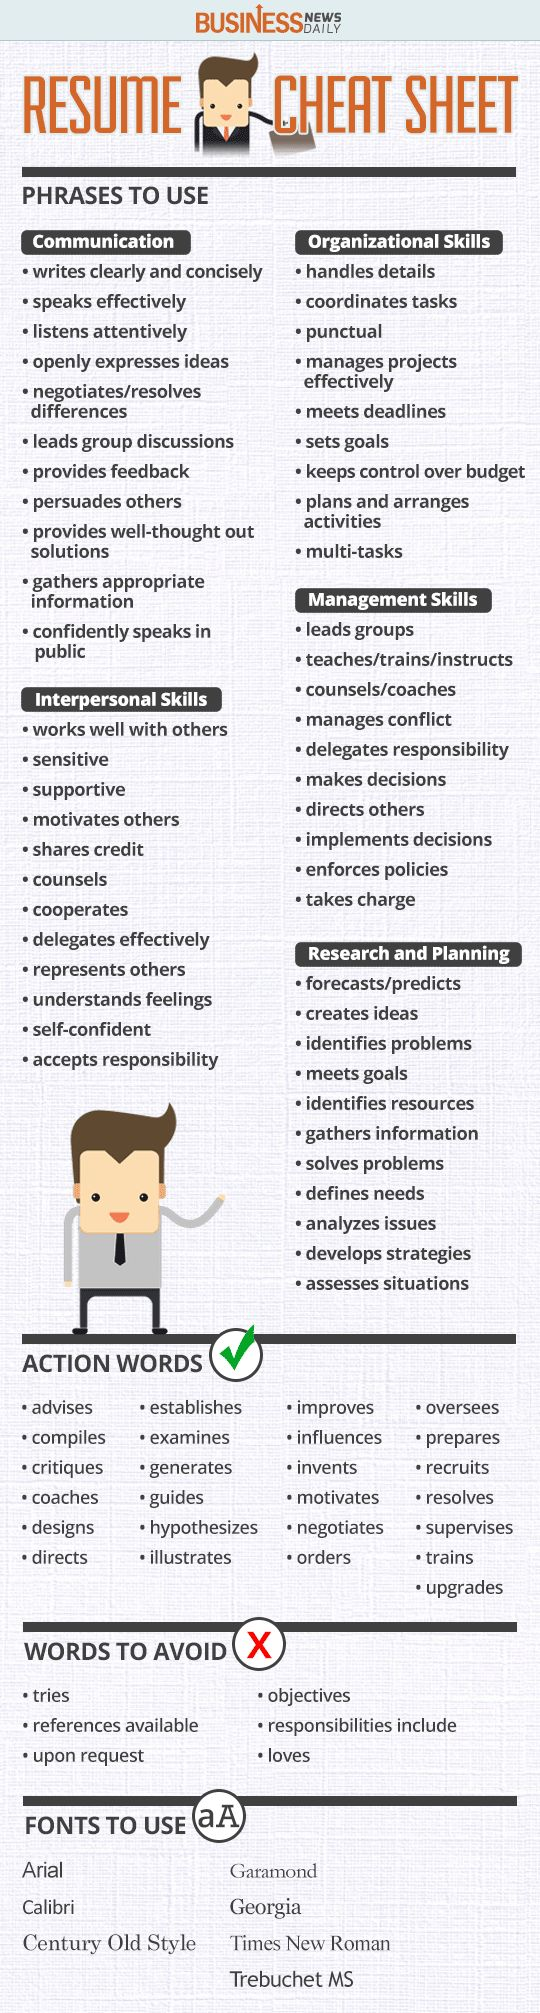 Opposenewapstandardsus  Unique  Ideas About Resume On Pinterest  Cv Format Resume Cv And  With Outstanding Resume Cheat Sheet Infographic Andrews Almost Done With A Complete Unit On Employment Which With Appealing Resumes For Internships Also Basic Resume Objective In Addition Sales Consultant Resume And Resume Chronological Order As Well As Whats A Good Objective For A Resume Additionally What Does A Resume Cover Letter Look Like From Pinterestcom With Opposenewapstandardsus  Outstanding  Ideas About Resume On Pinterest  Cv Format Resume Cv And  With Appealing Resume Cheat Sheet Infographic Andrews Almost Done With A Complete Unit On Employment Which And Unique Resumes For Internships Also Basic Resume Objective In Addition Sales Consultant Resume From Pinterestcom